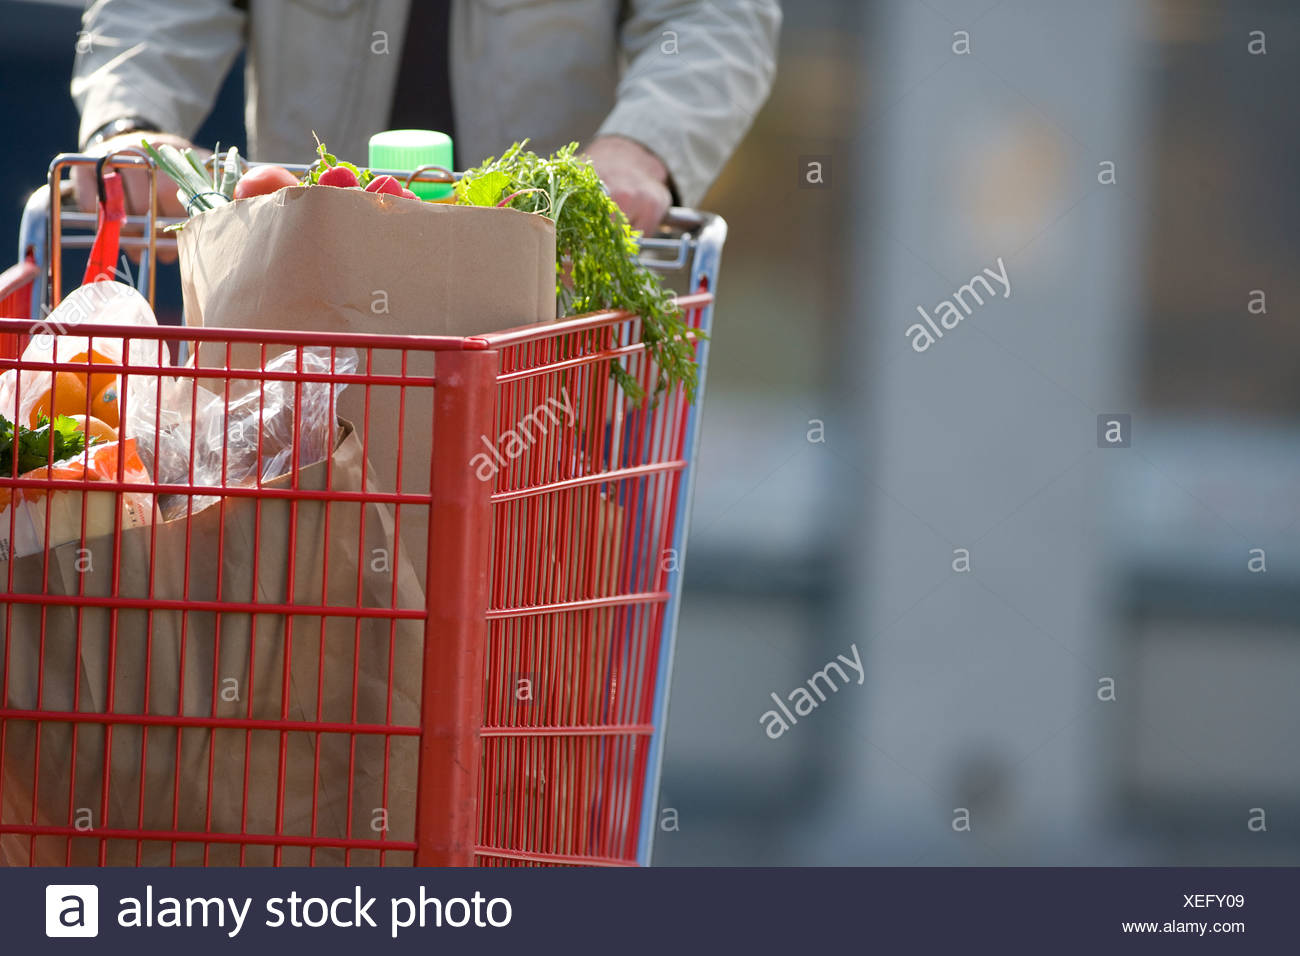 Man pushing grocery cart full of groceries - Stock Image